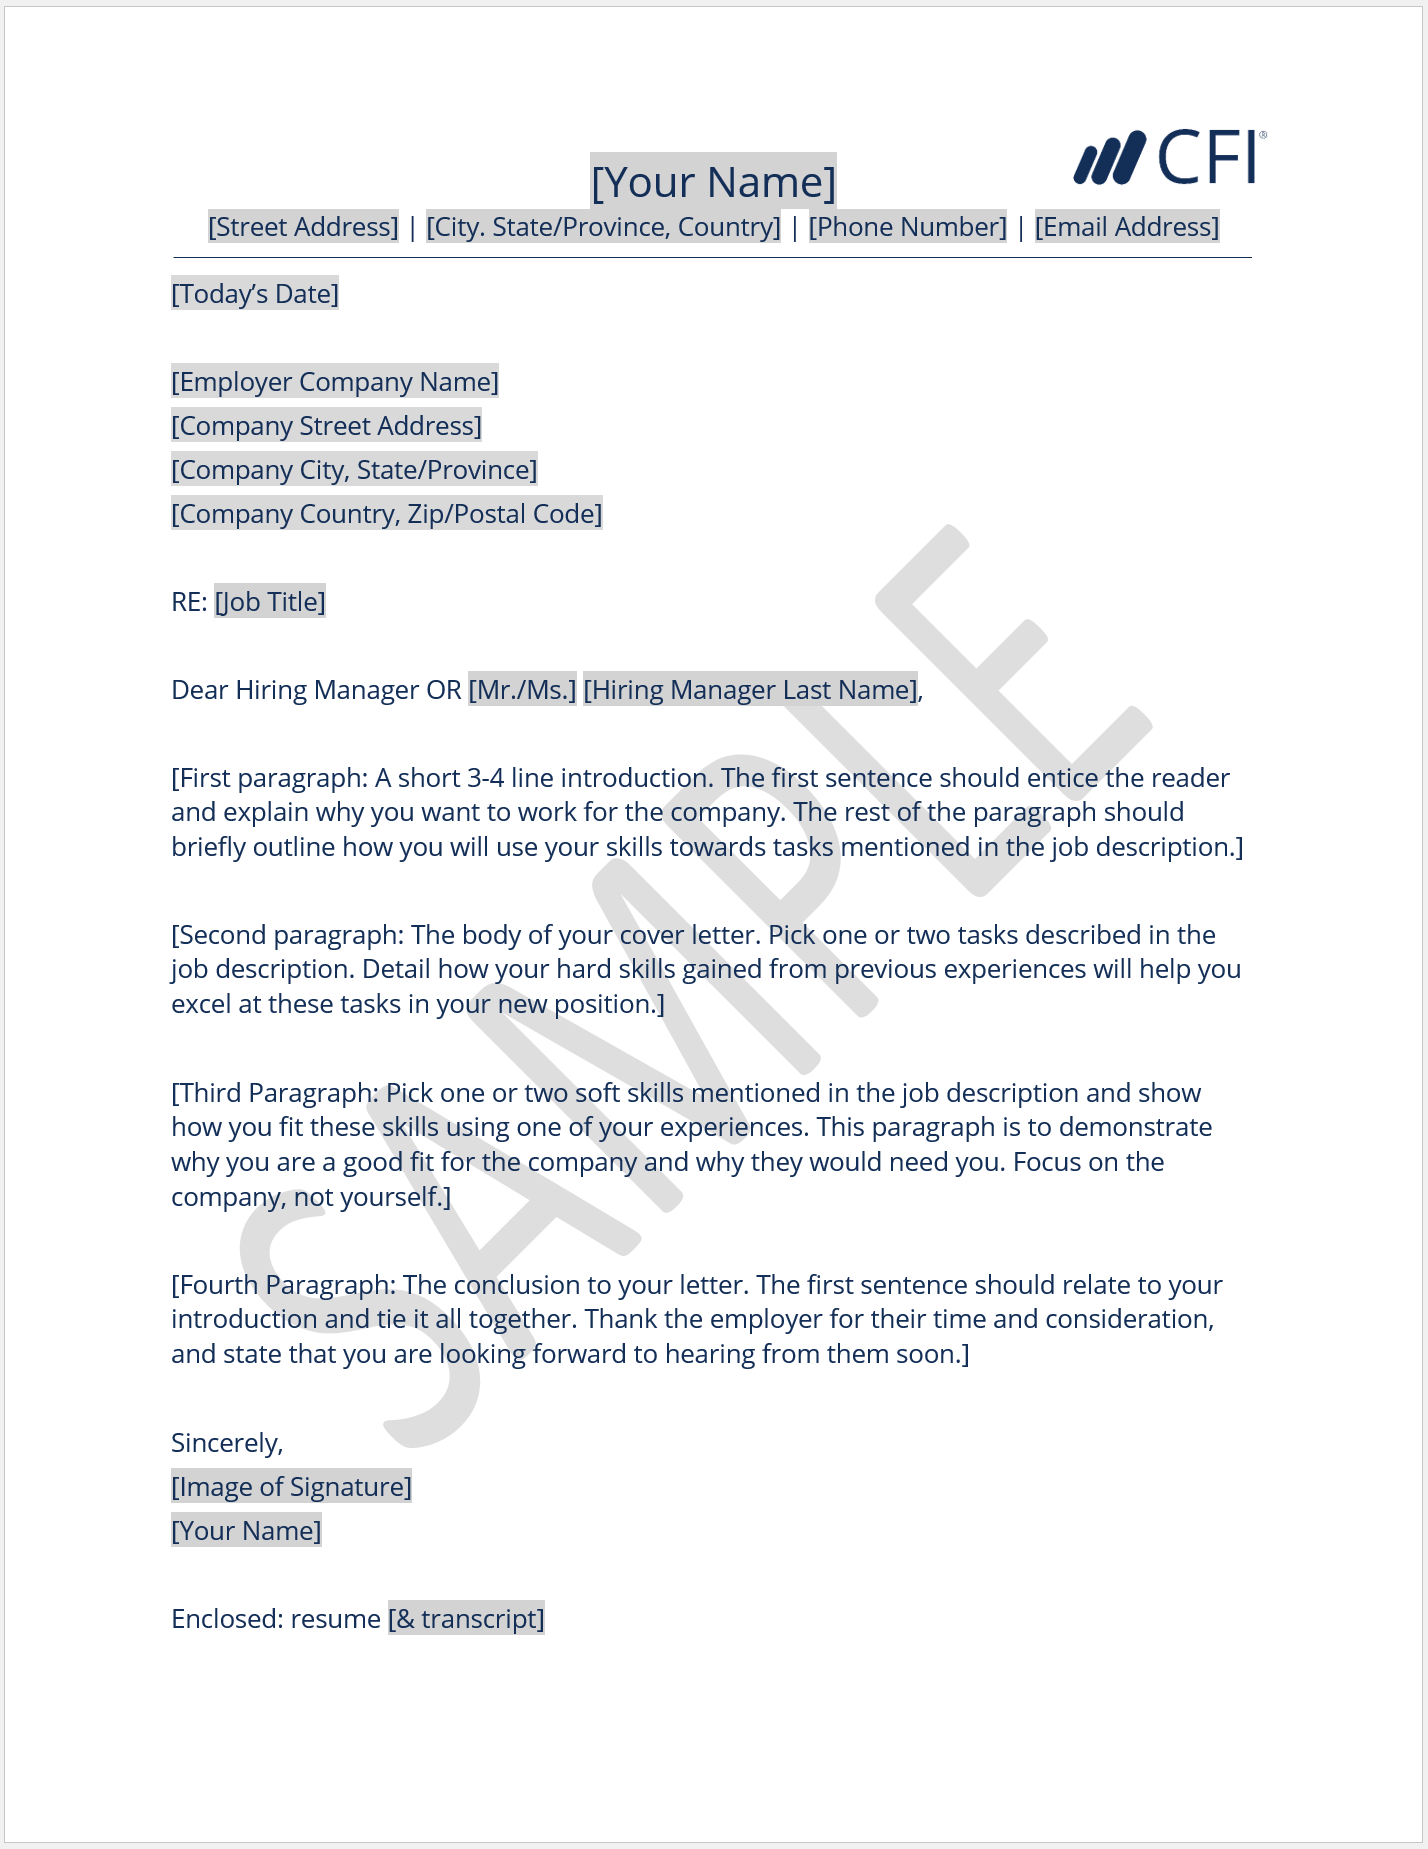 Cover Letter - How to Write a Cover Letter - Template and ...